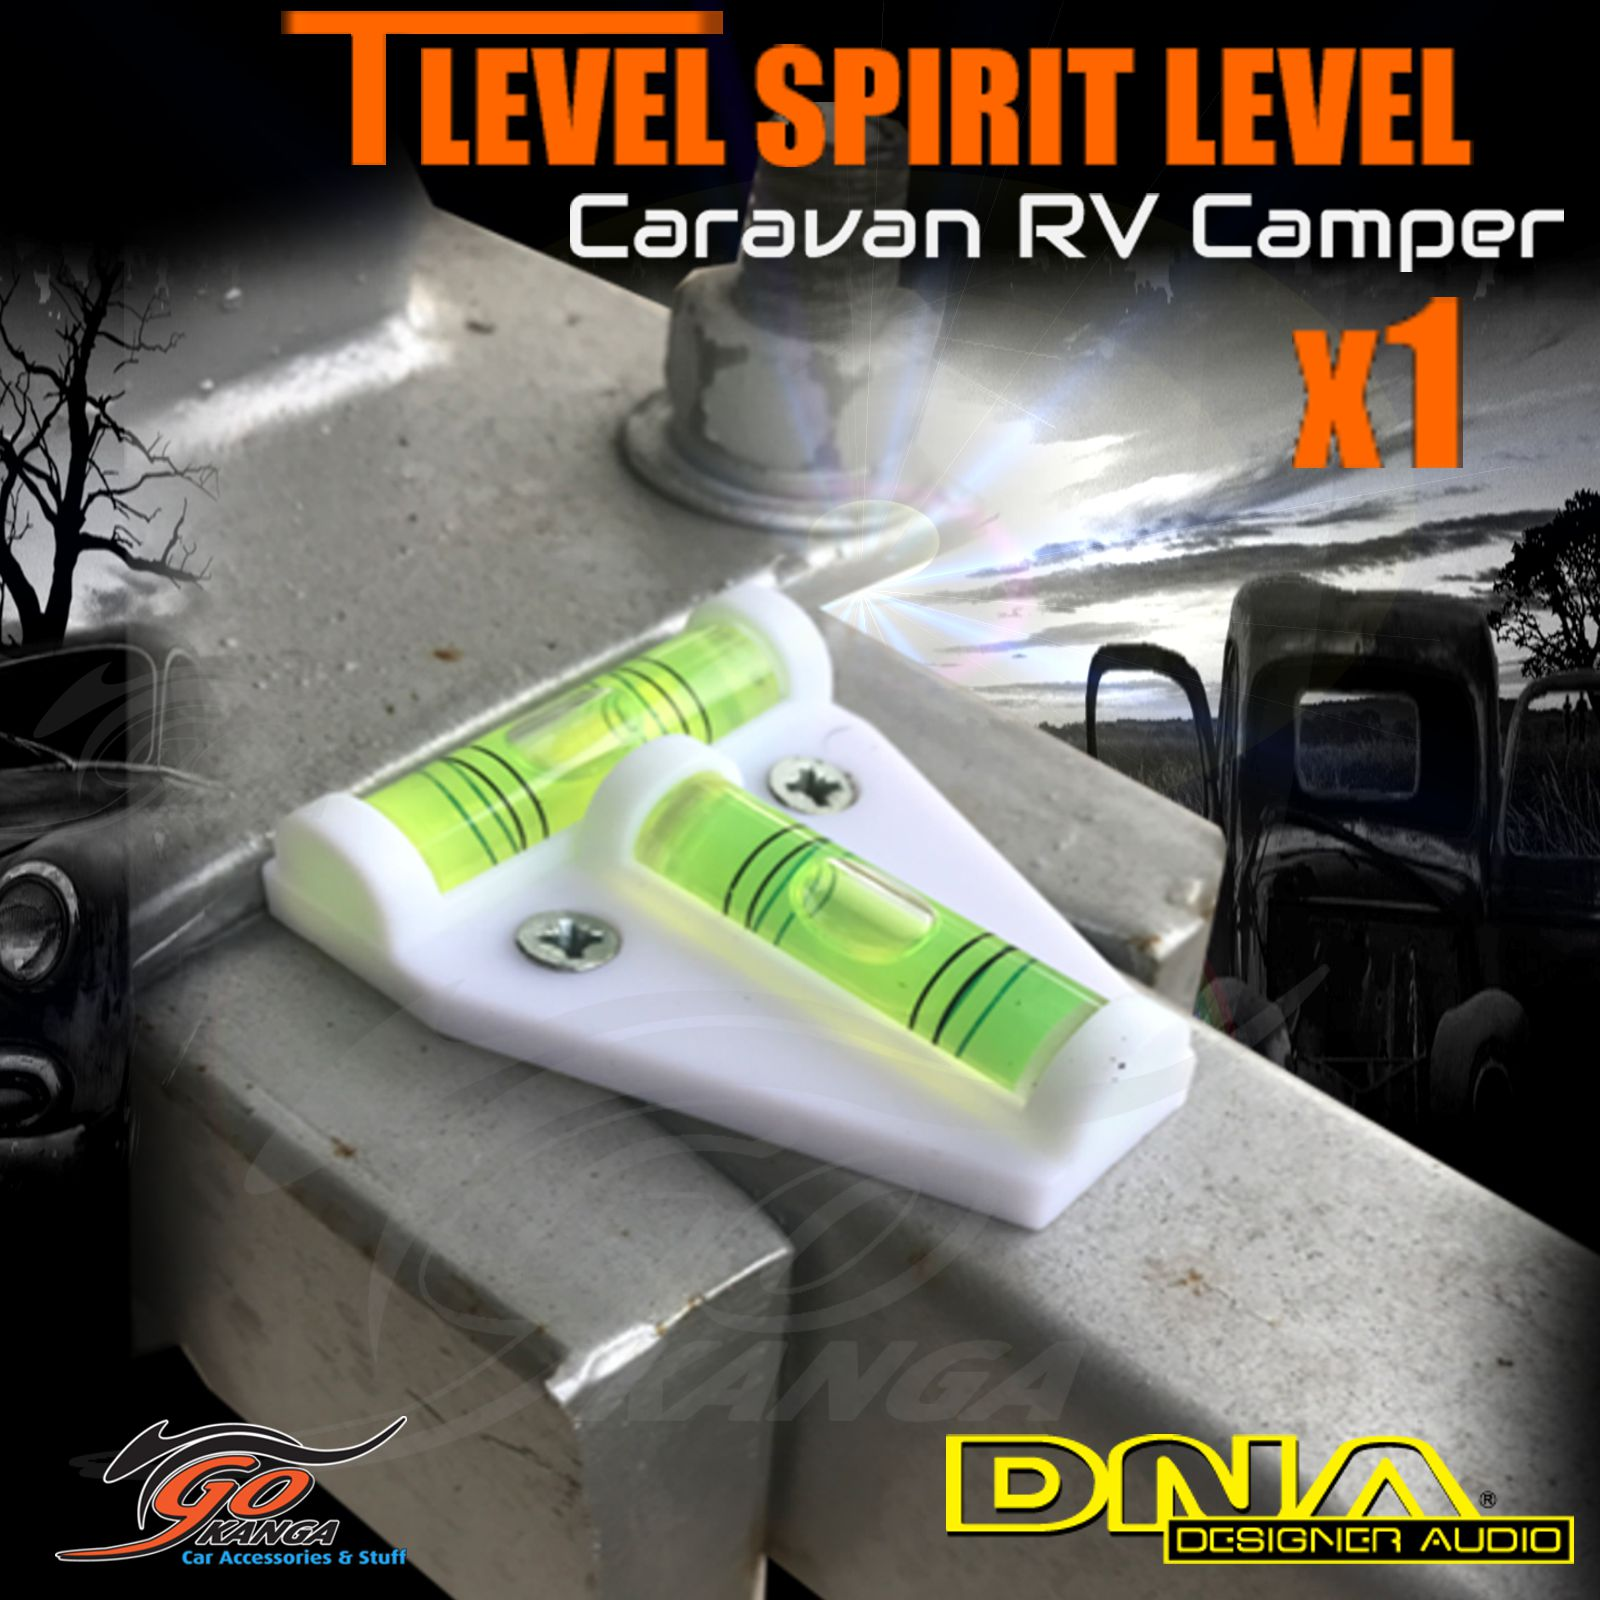 Spirit Level Parts Affordable Im Making The Bumper Out Of Rec Camco 63926 612v Circuit Tester Camper Trailer Rv Image May Differ Interesting T X New Caravan Motorhome Boat Accessories Xxx Marine With